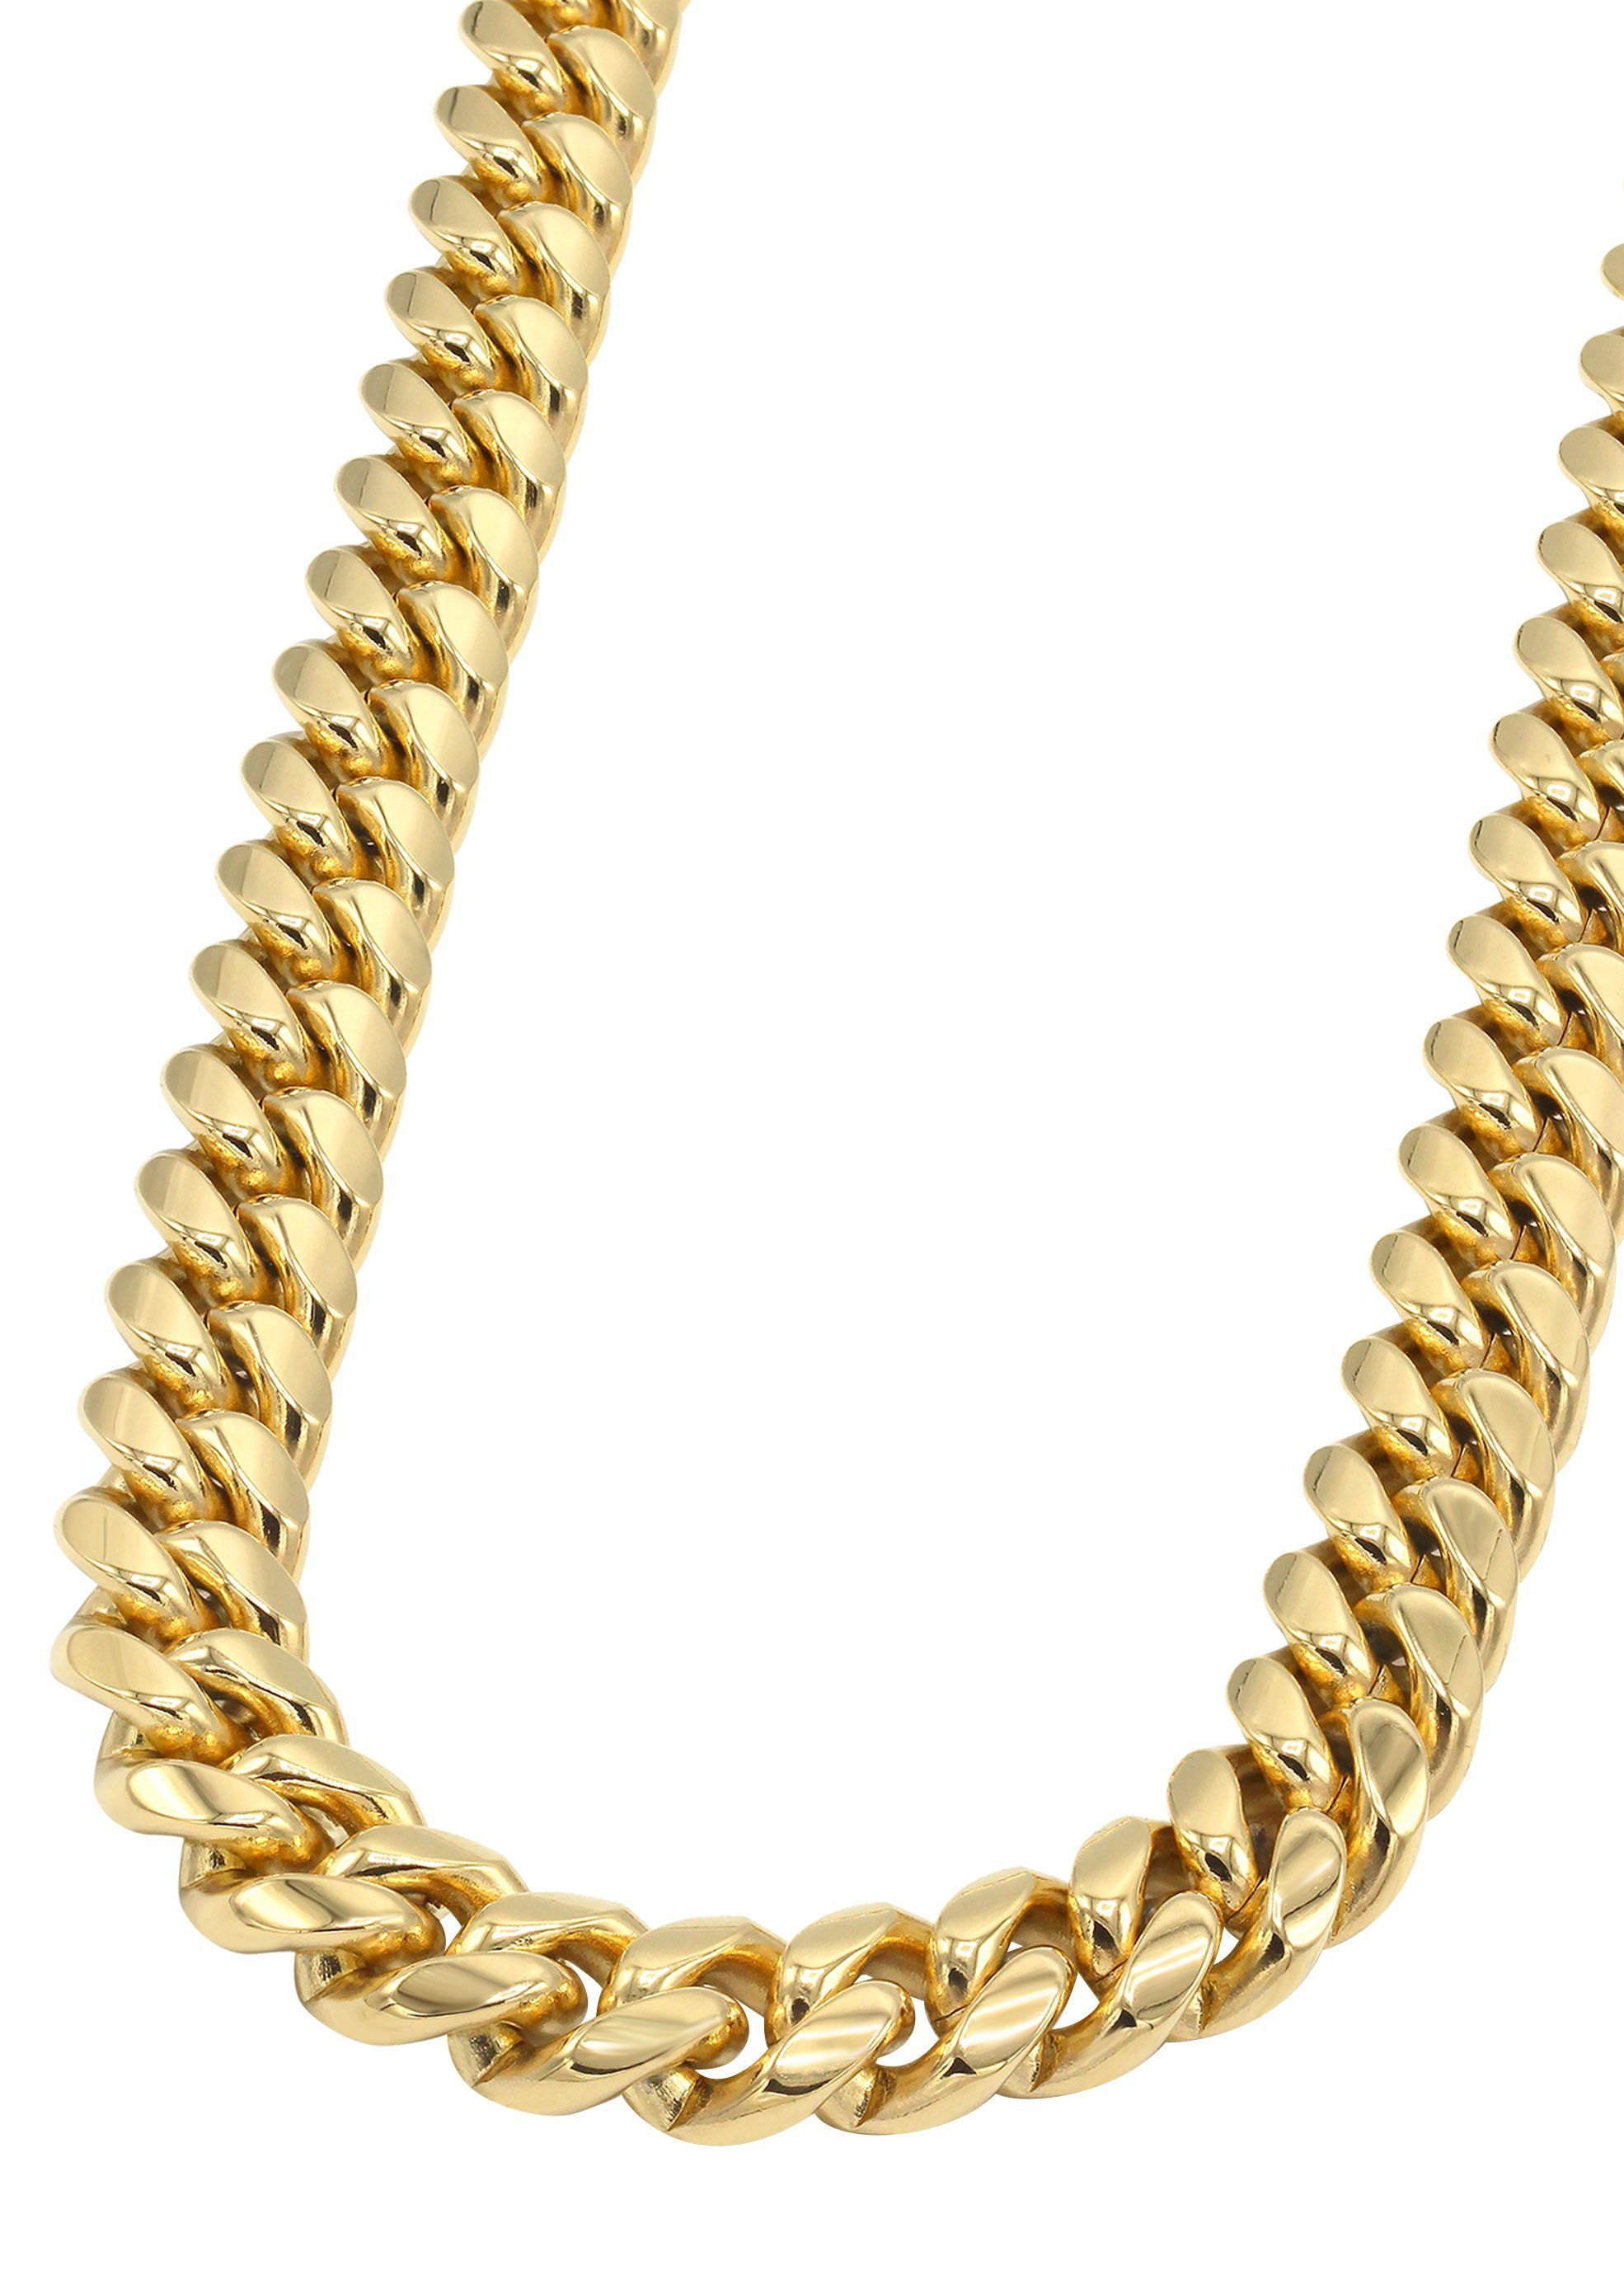 Gangsta Chain Png Image Download Picsart Gold Chain Png Clipart Gold Chains Chain Gold